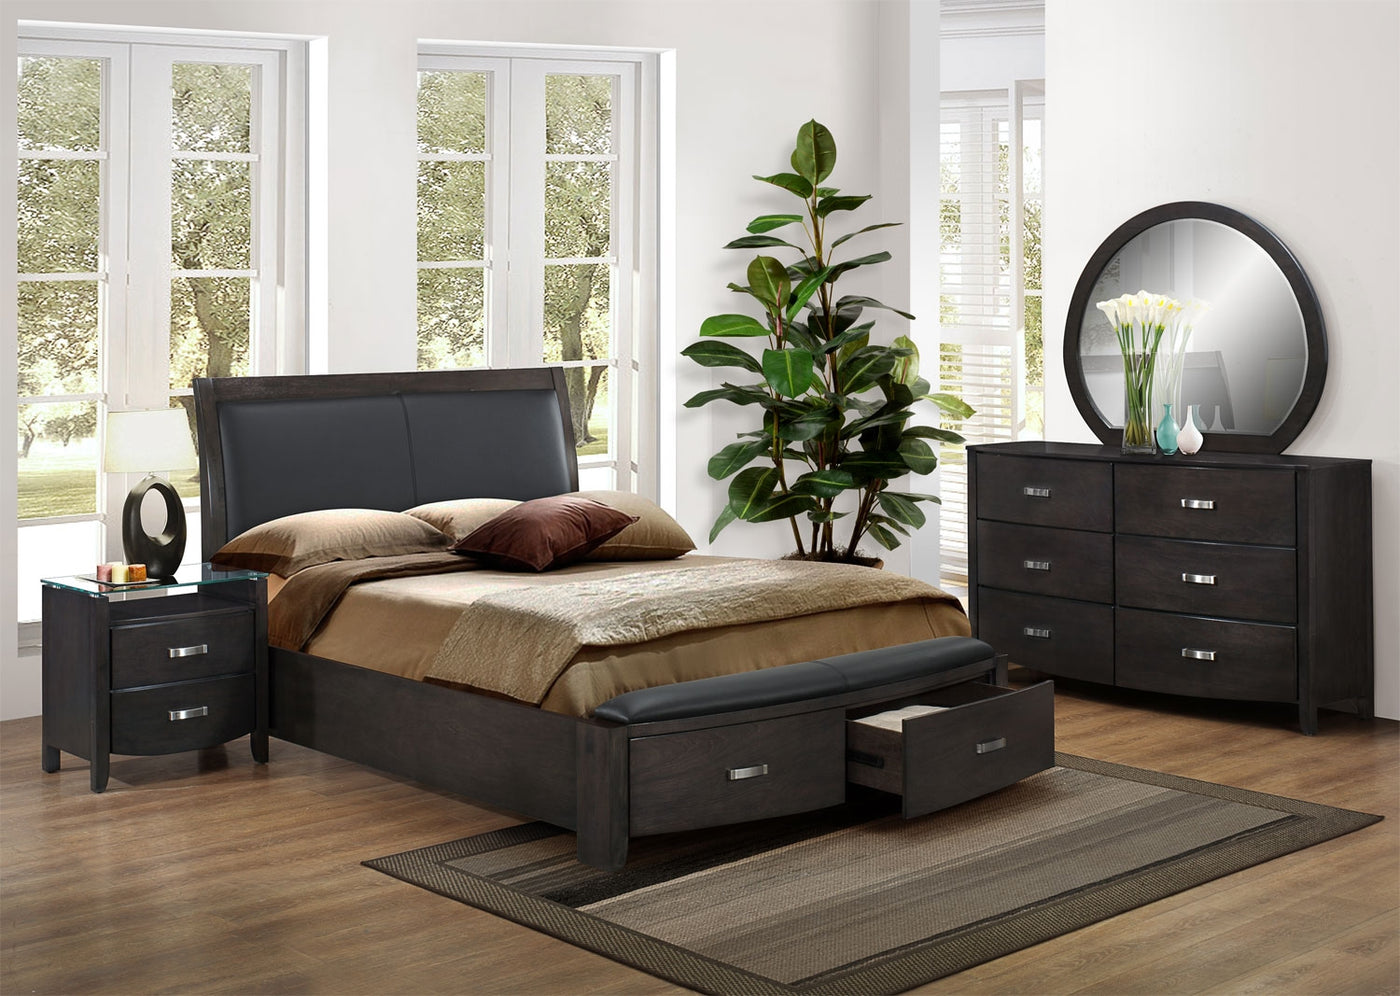 Cinema 8-Piece King Bedroom Set - Charcoal